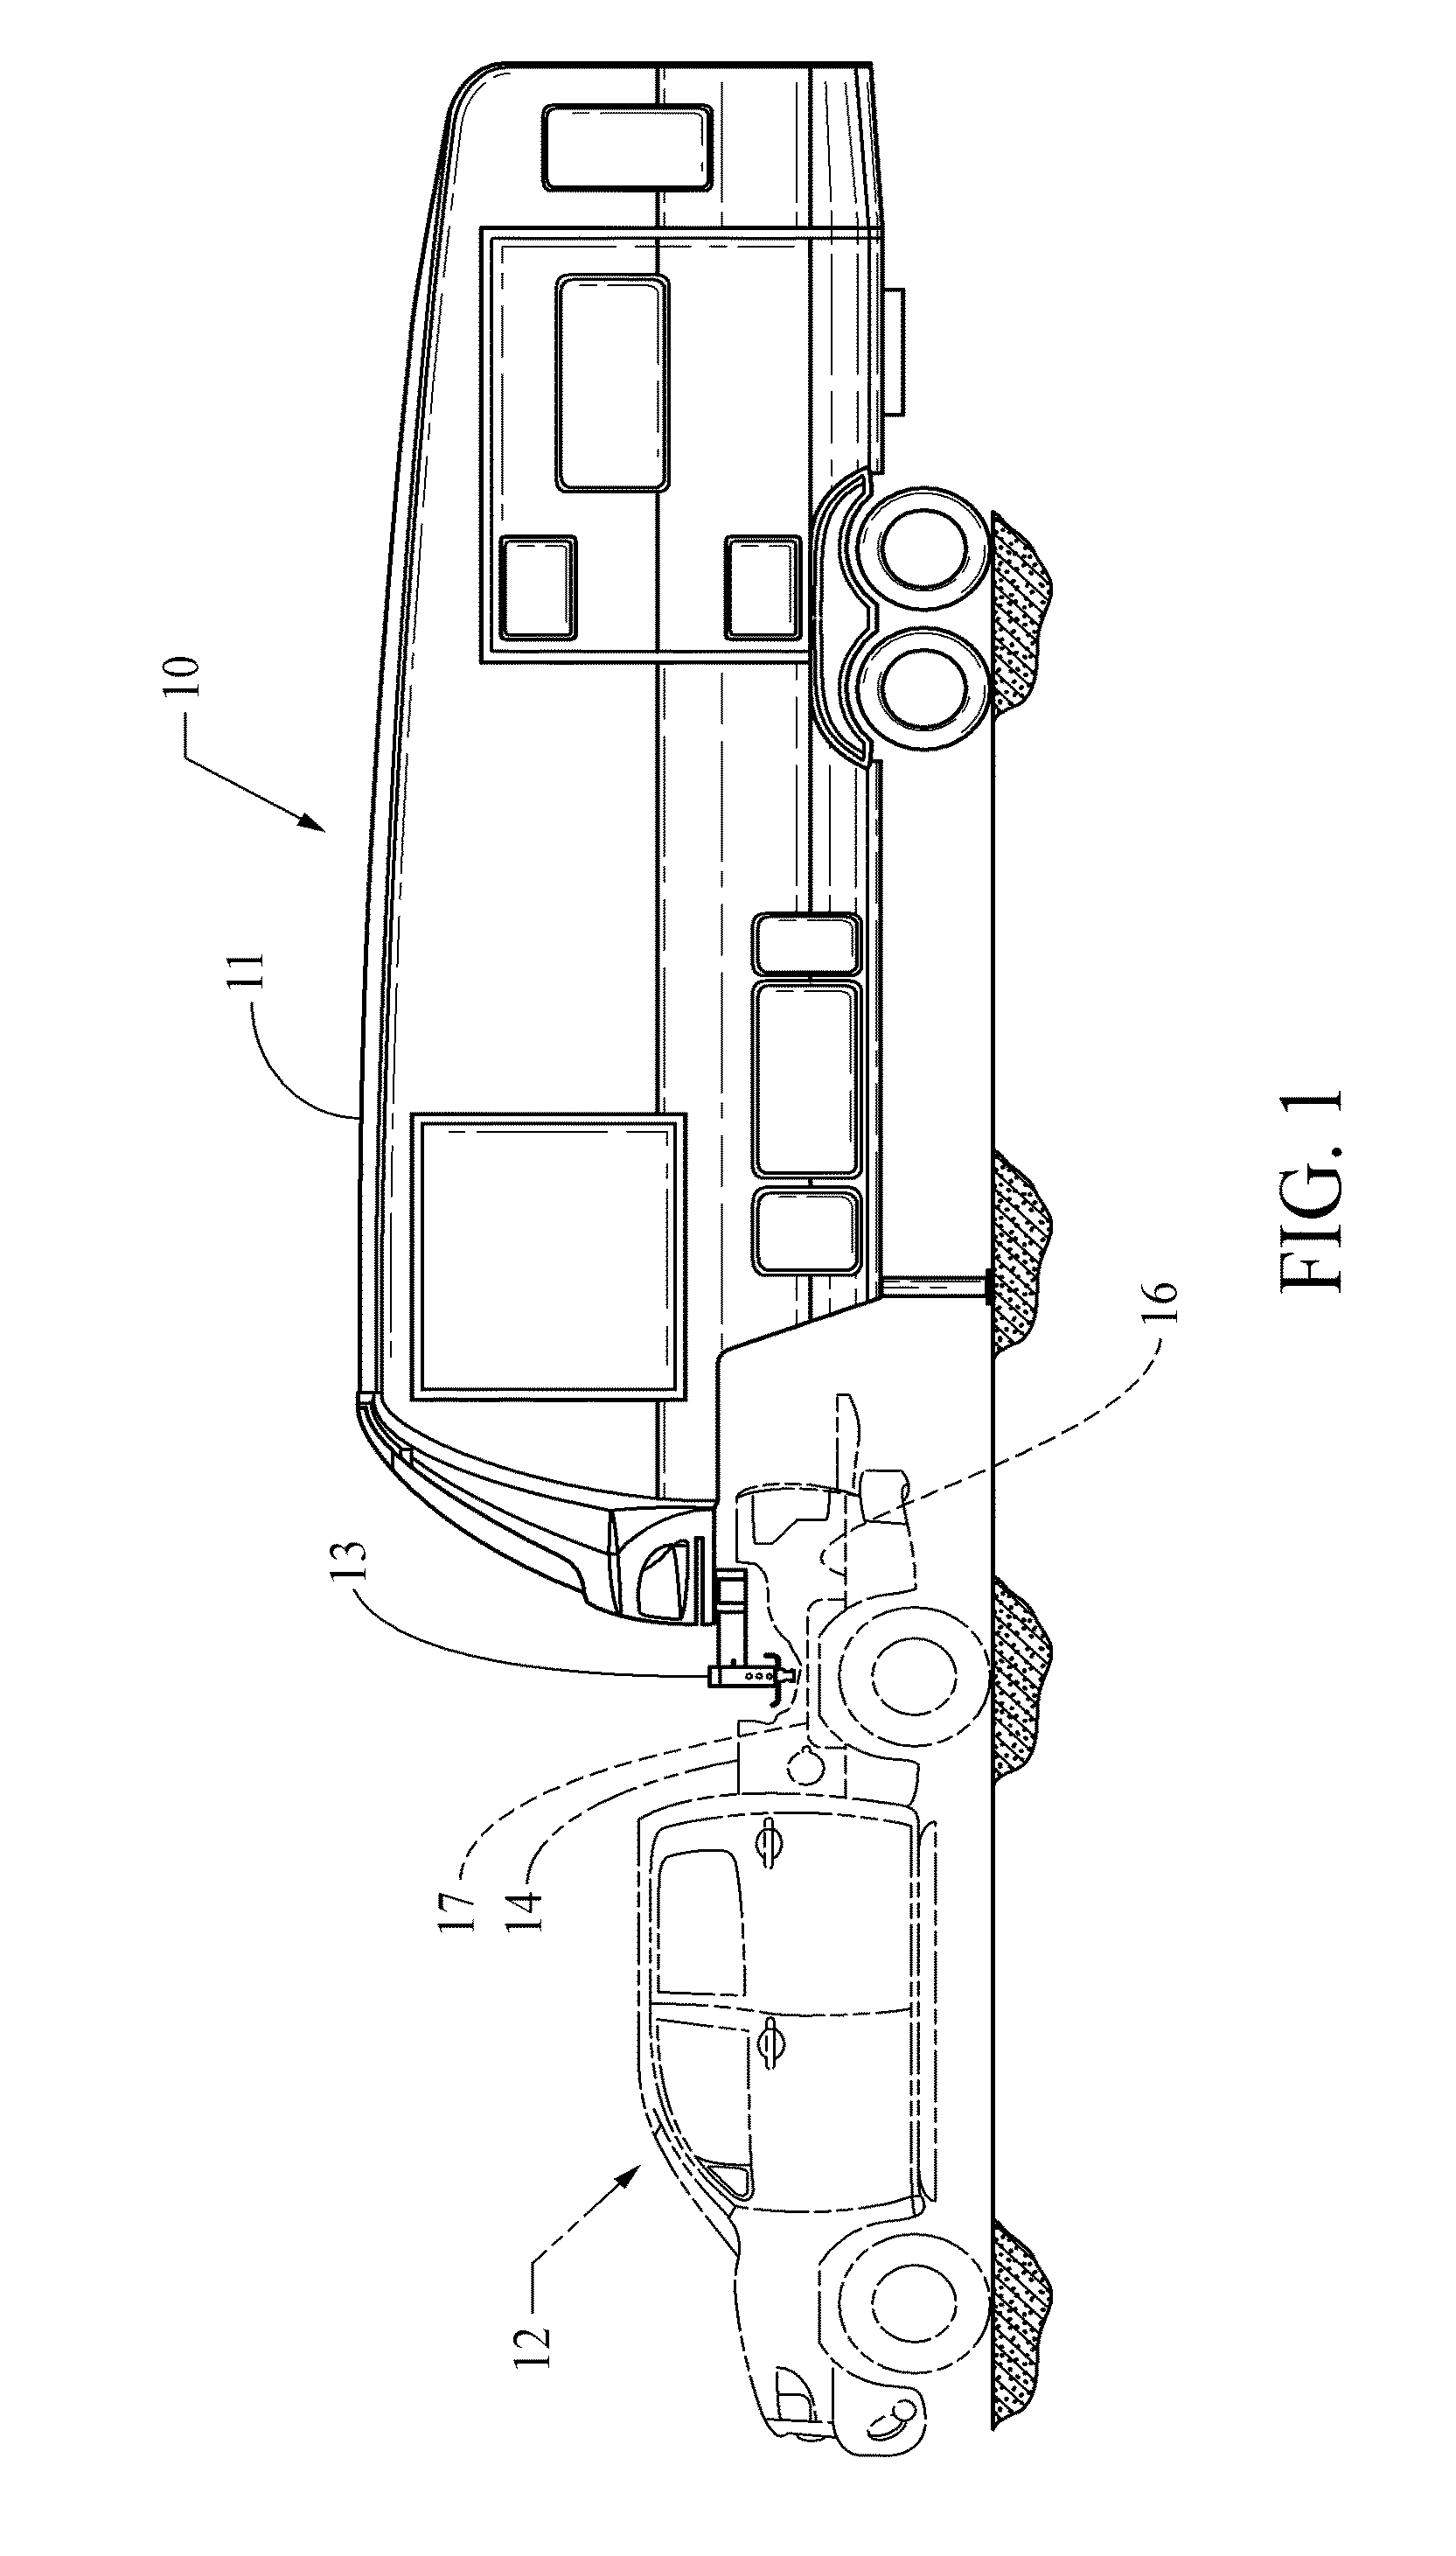 patent us20120261902 - fifth wheel travel trailer